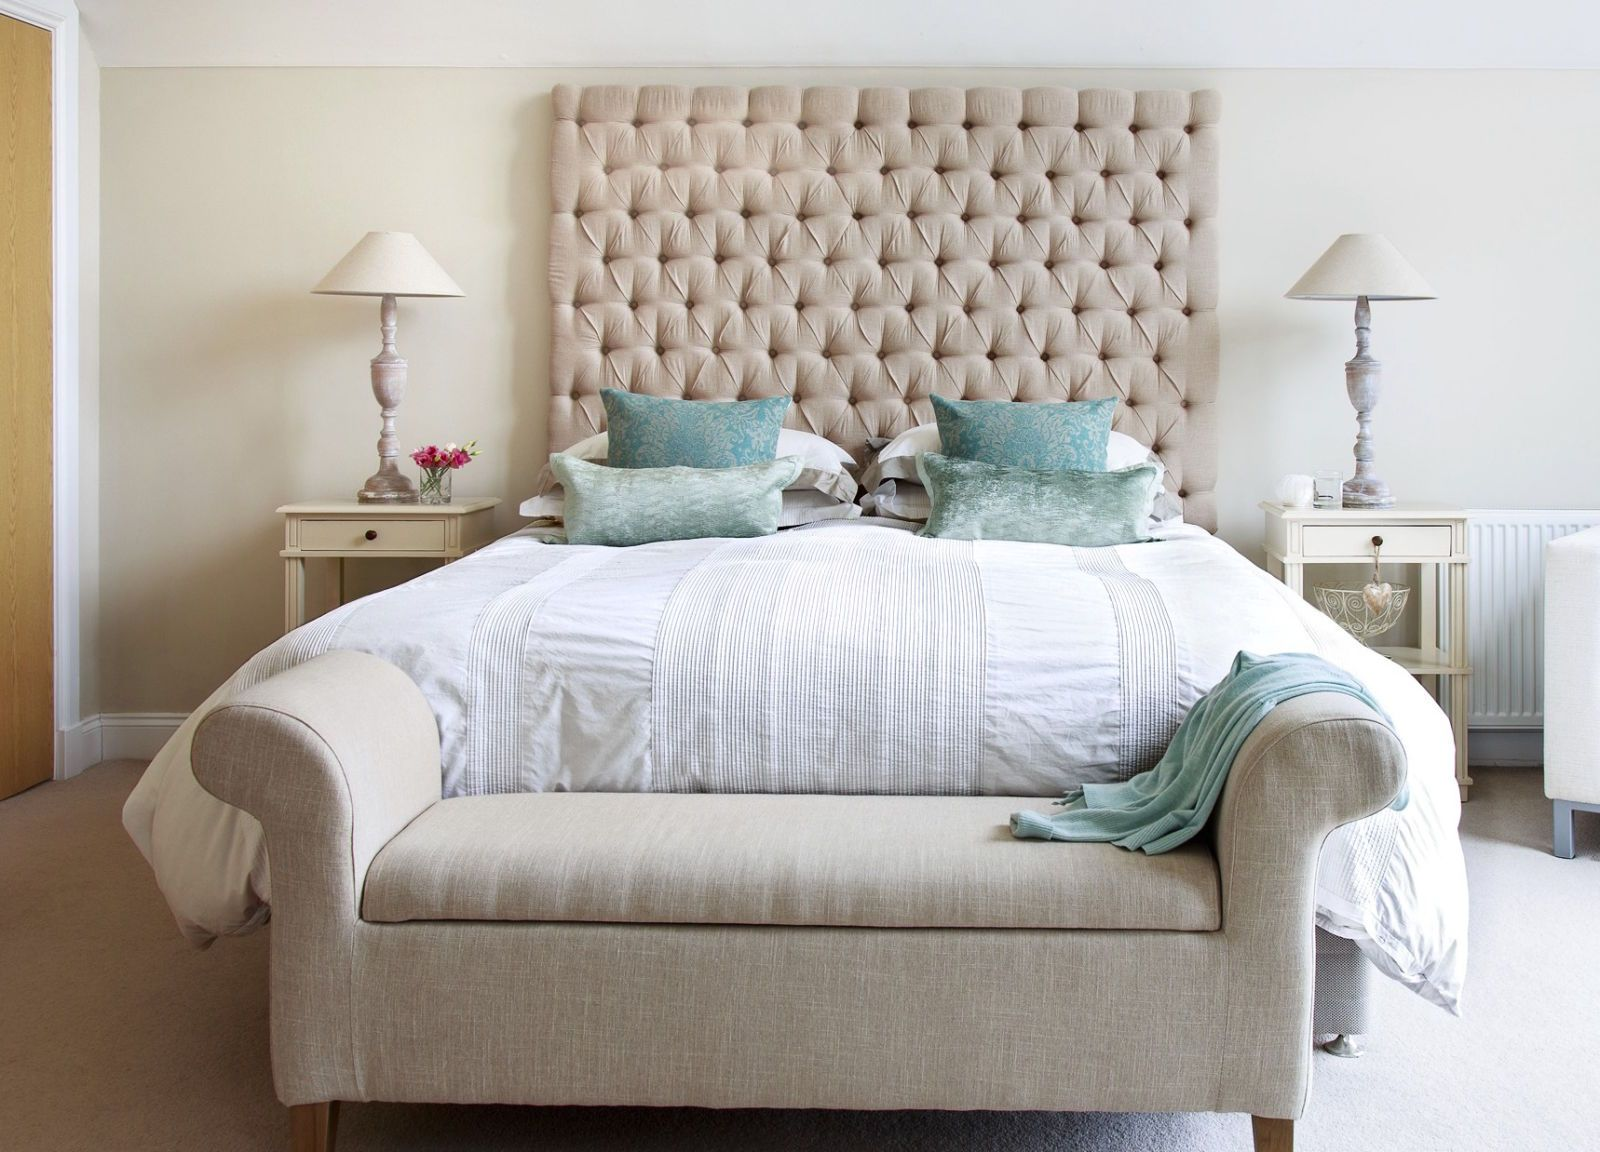 8 Changes Your Bedroom Needs So You Can Sleep Better